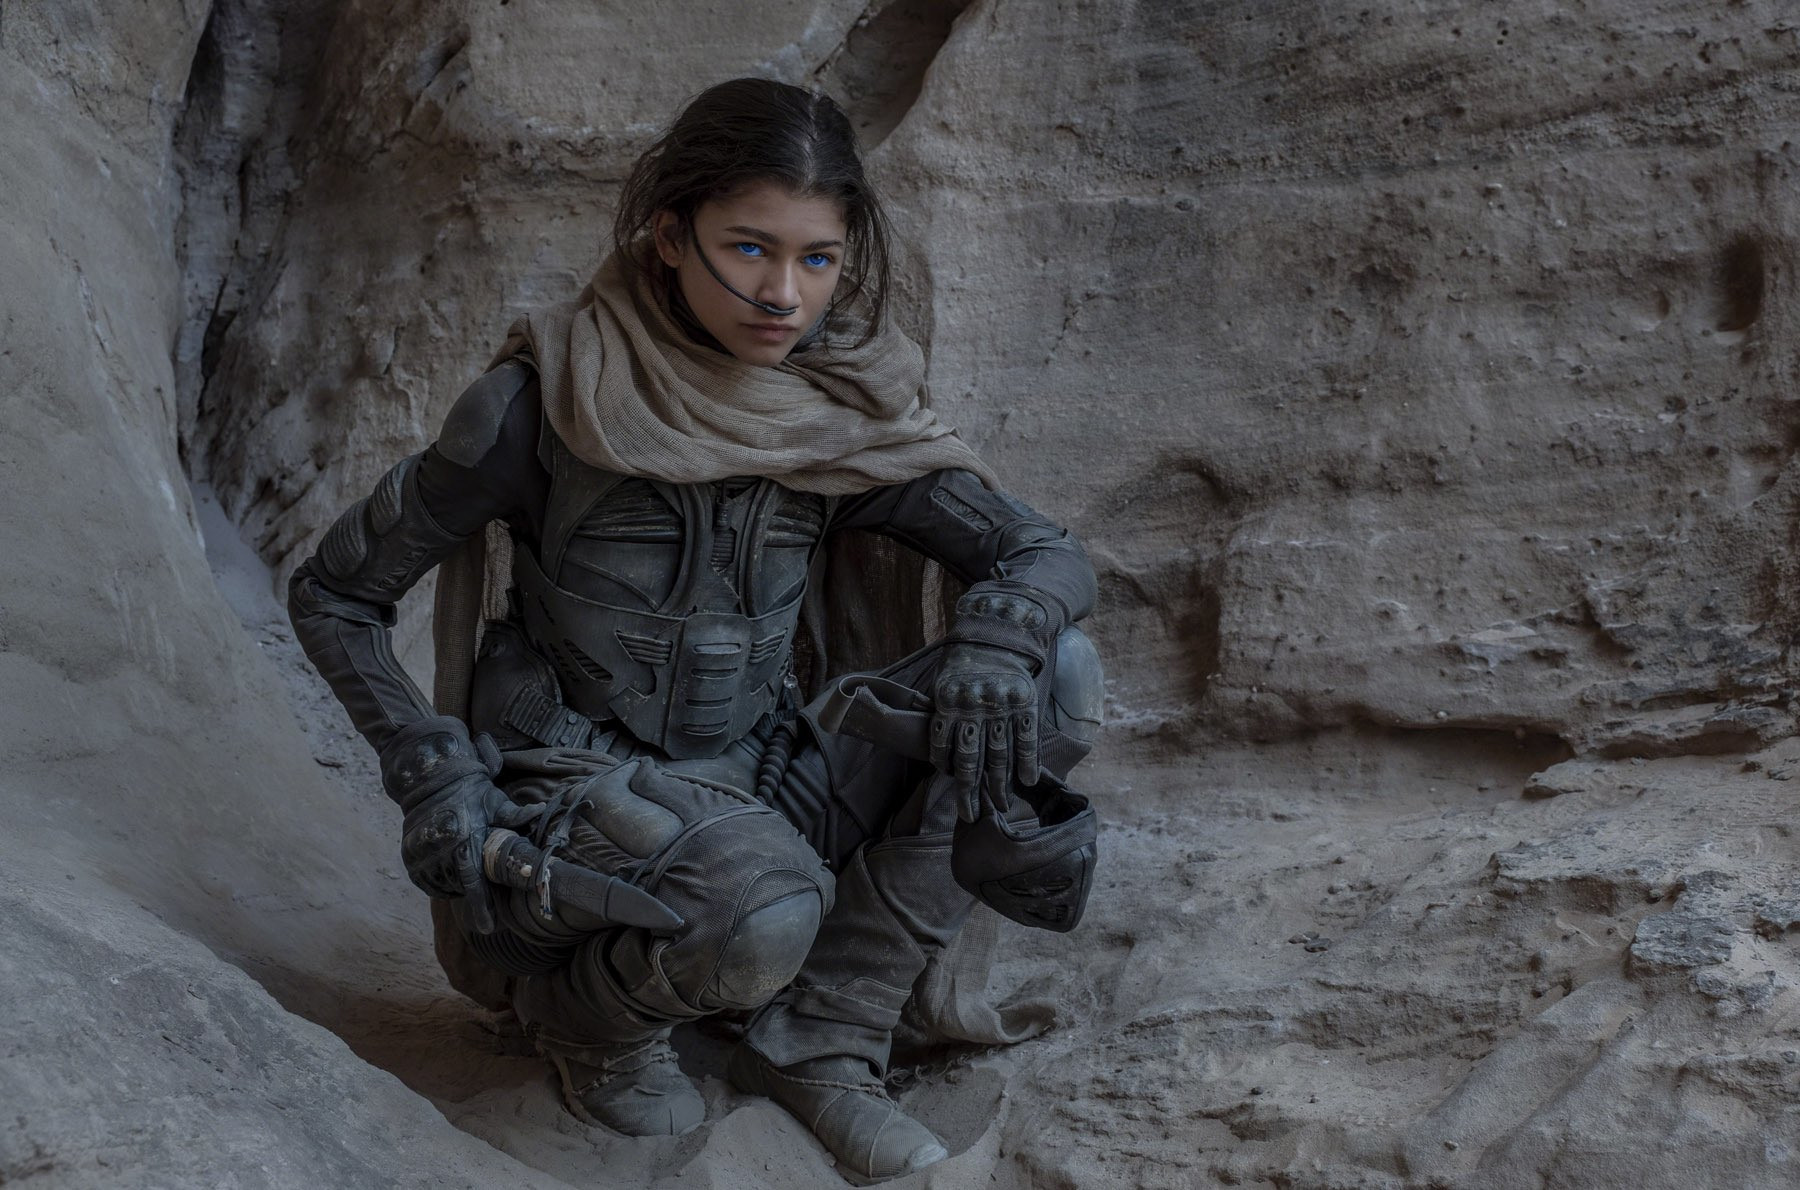 Dune Movie Character Chani will be the protagonist of the sequel